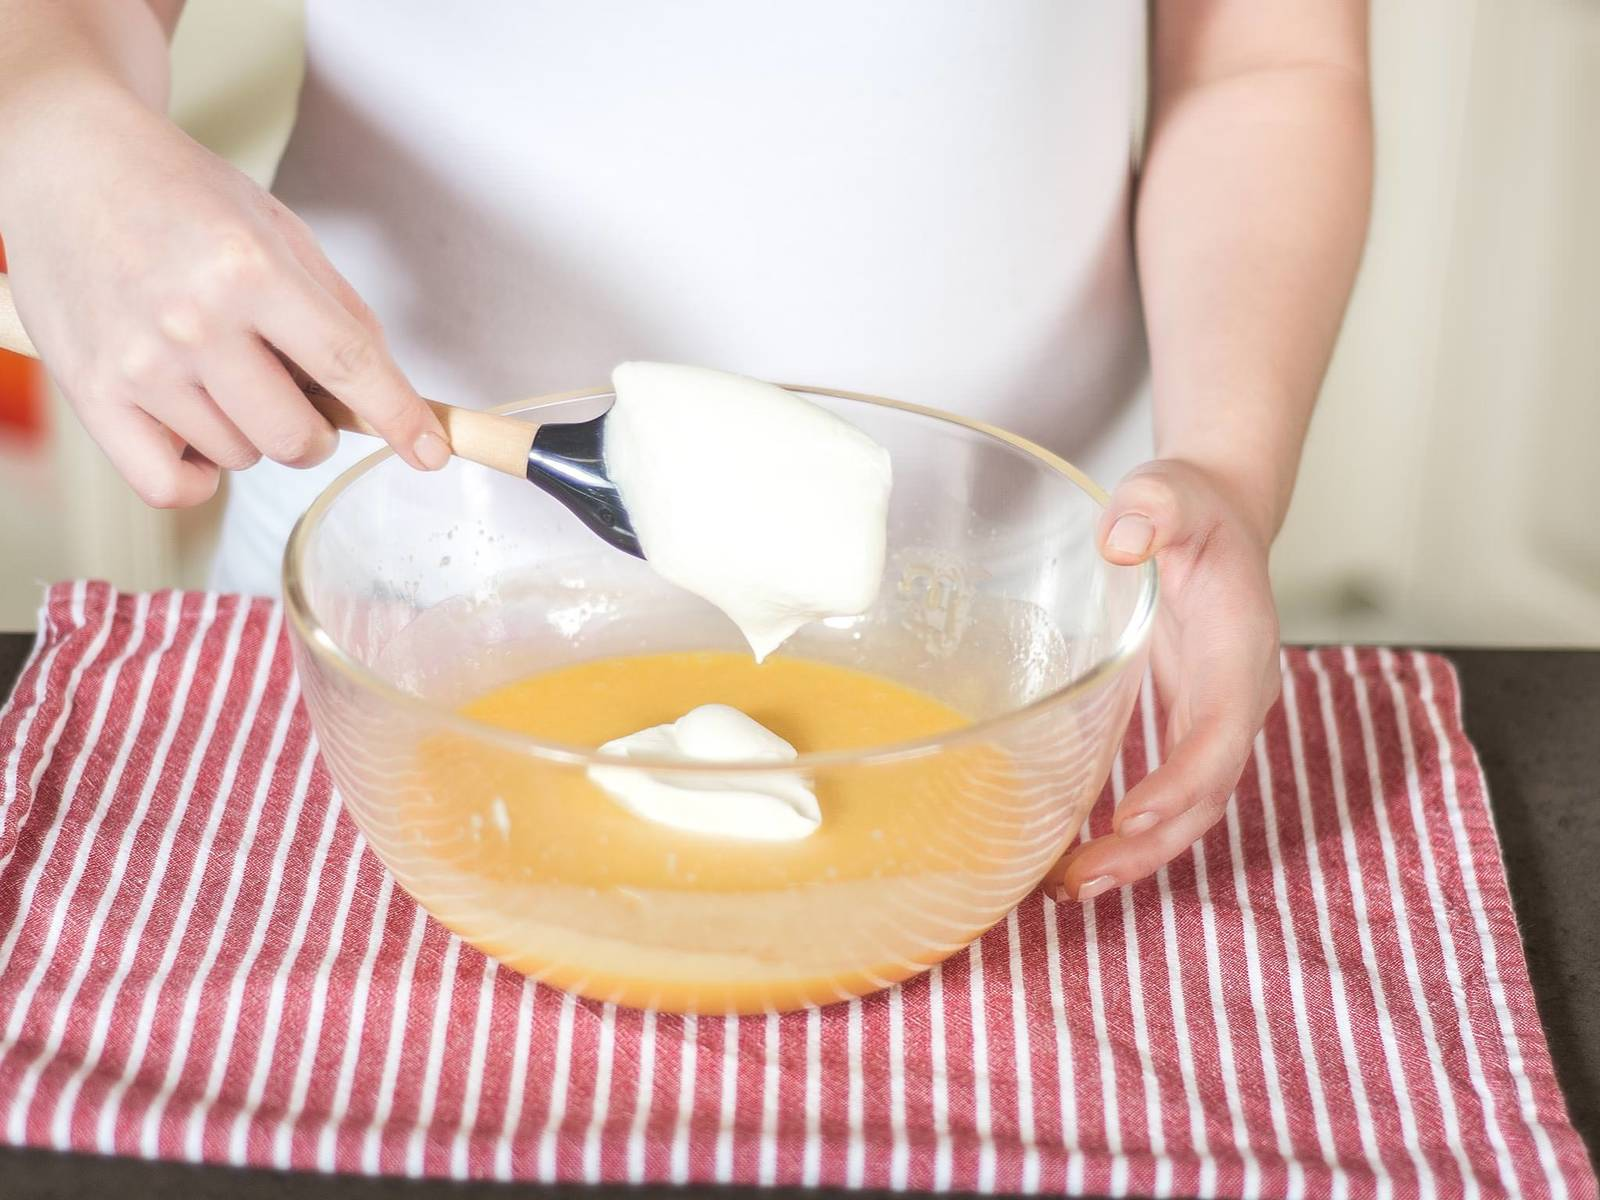 Now fold the whipped cream carefully into the cold chocolate mixture. Handle gently, so that the mousse remains airy.